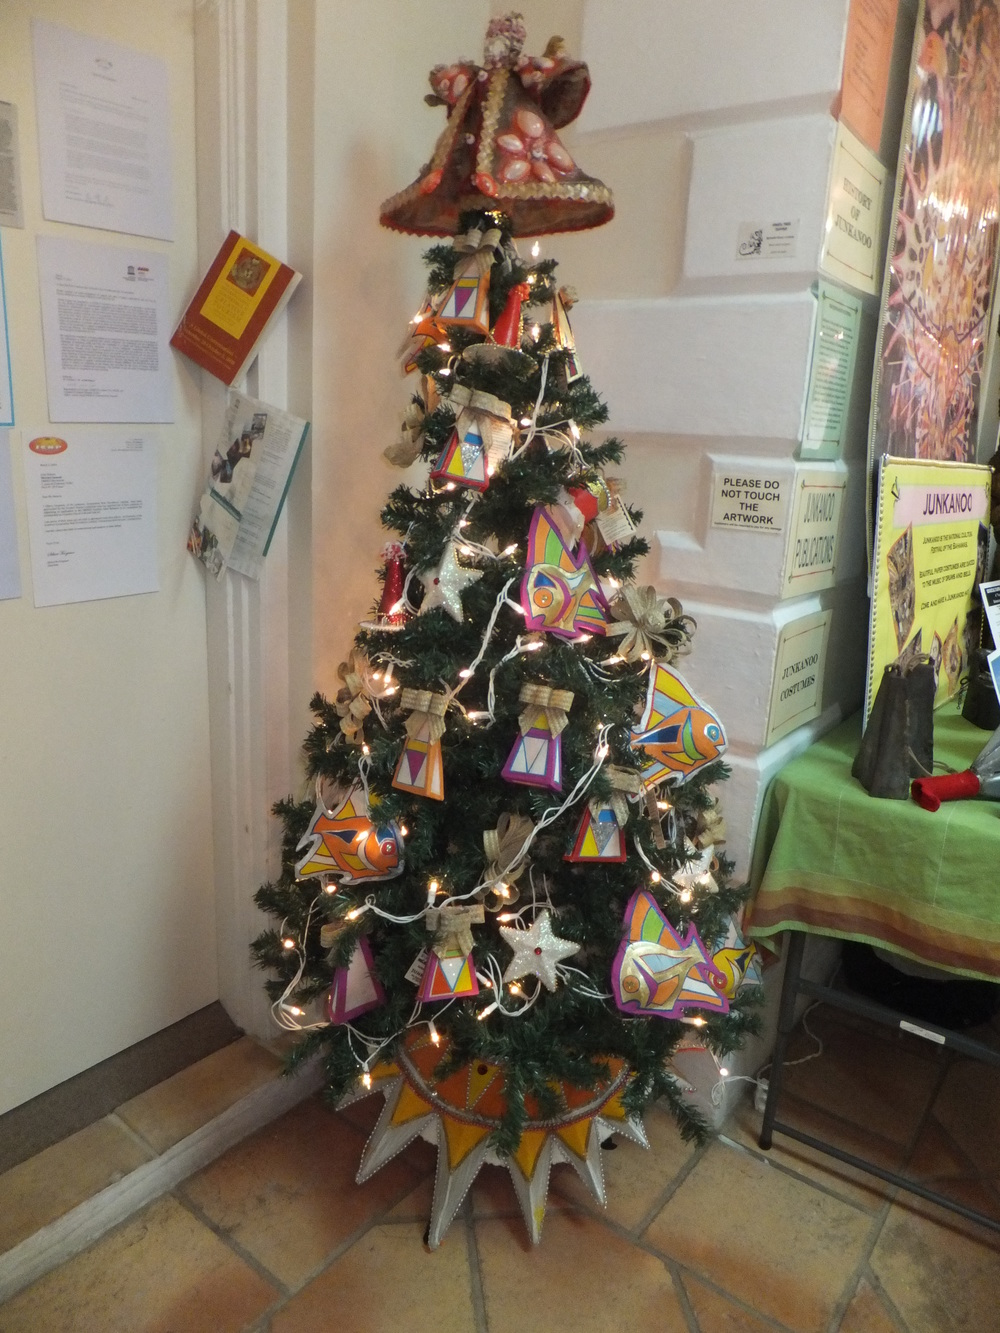 A uniquely Bahamian Christmas tree decorated with hand made junkanoo ornaments and a straw and shell studded tree topper angel